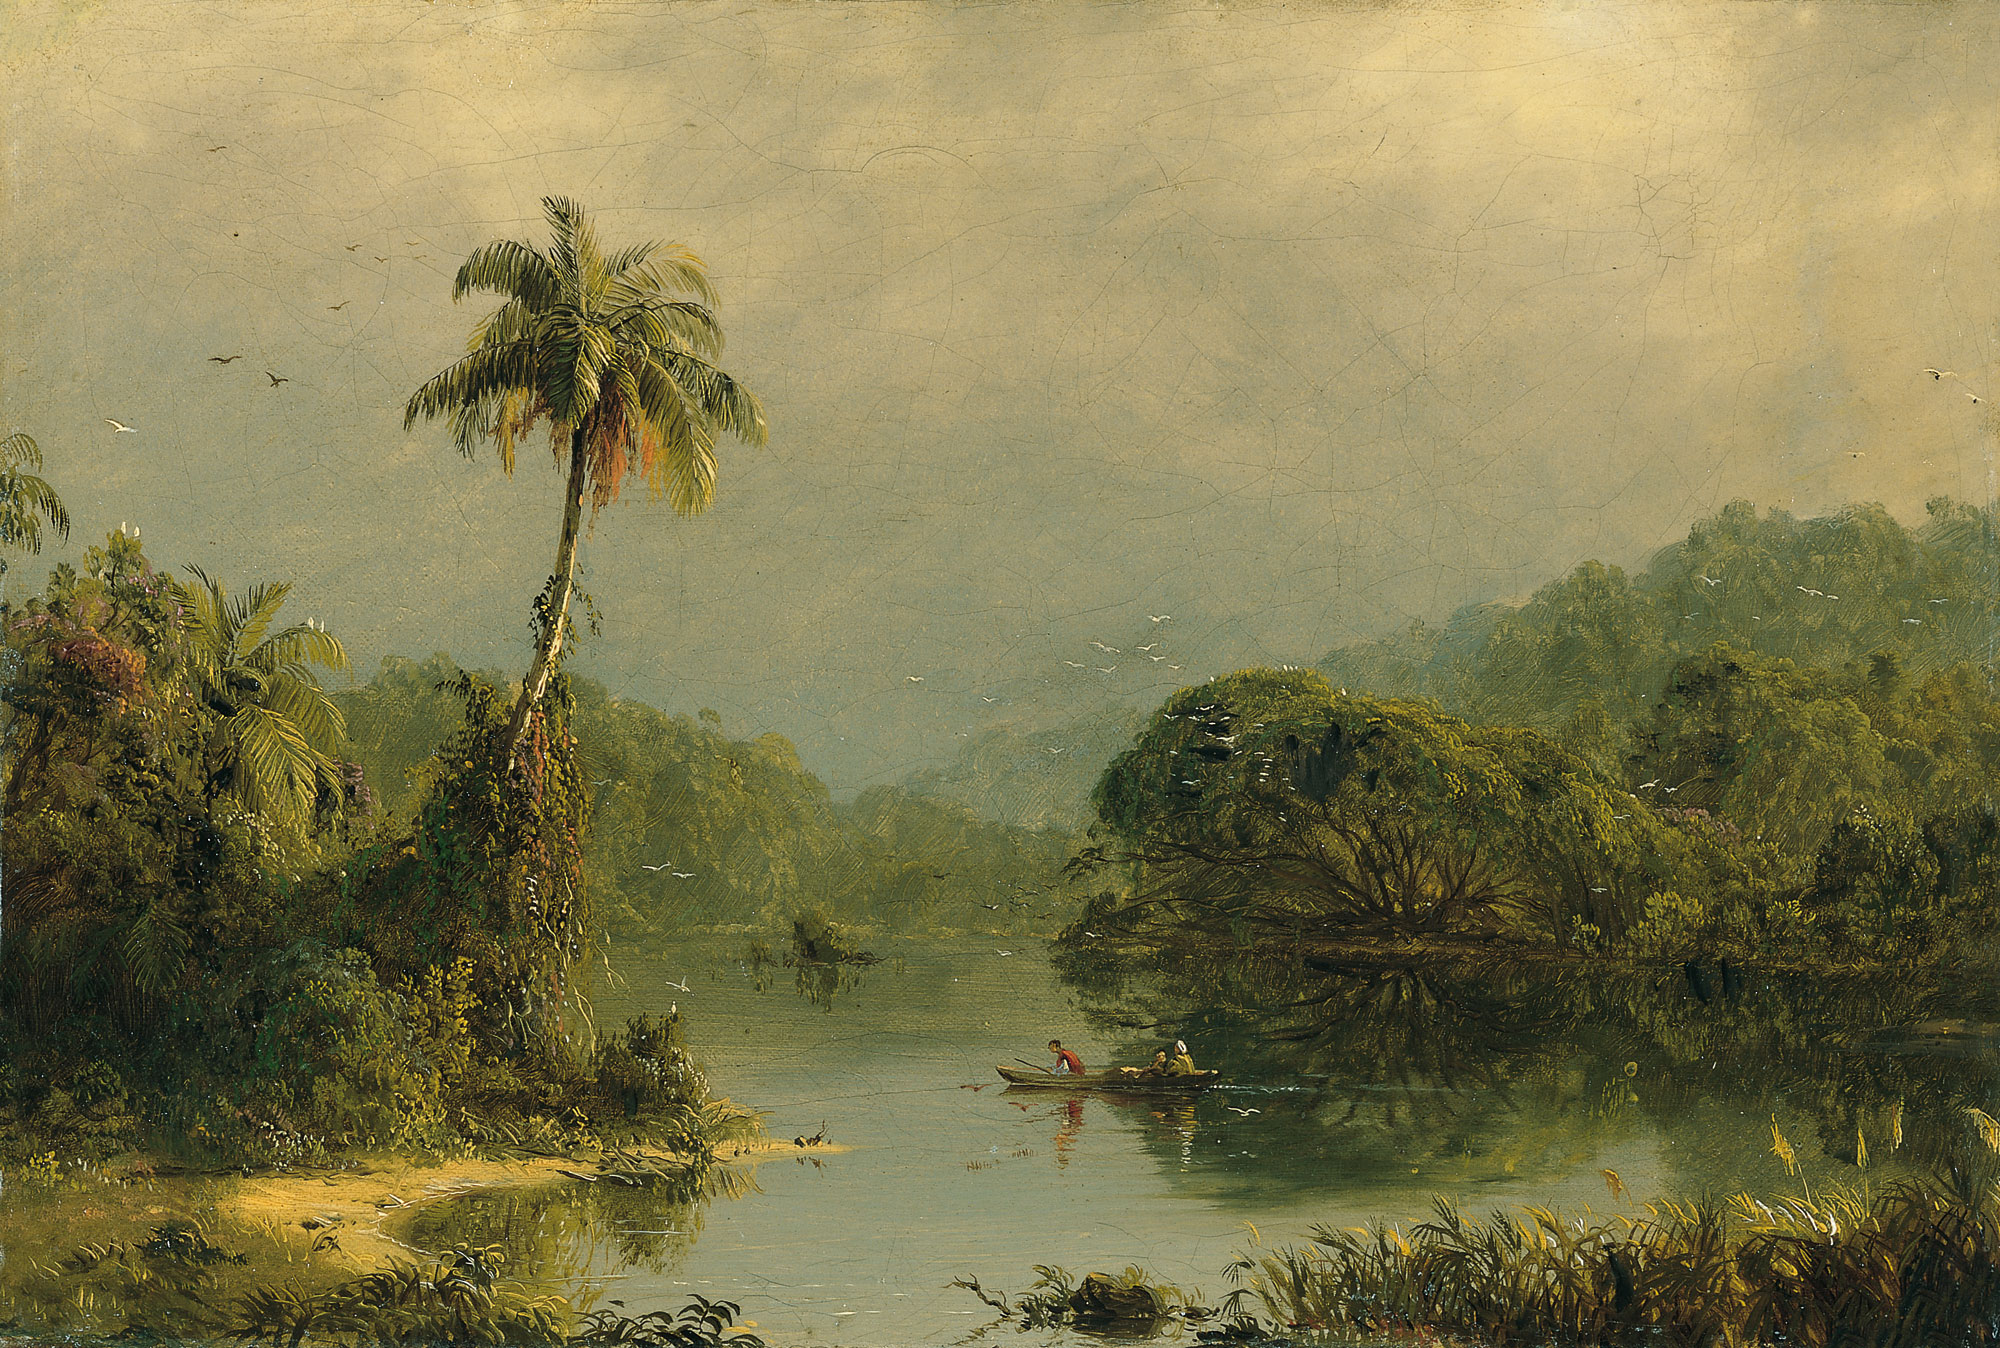 Paisaje tropical